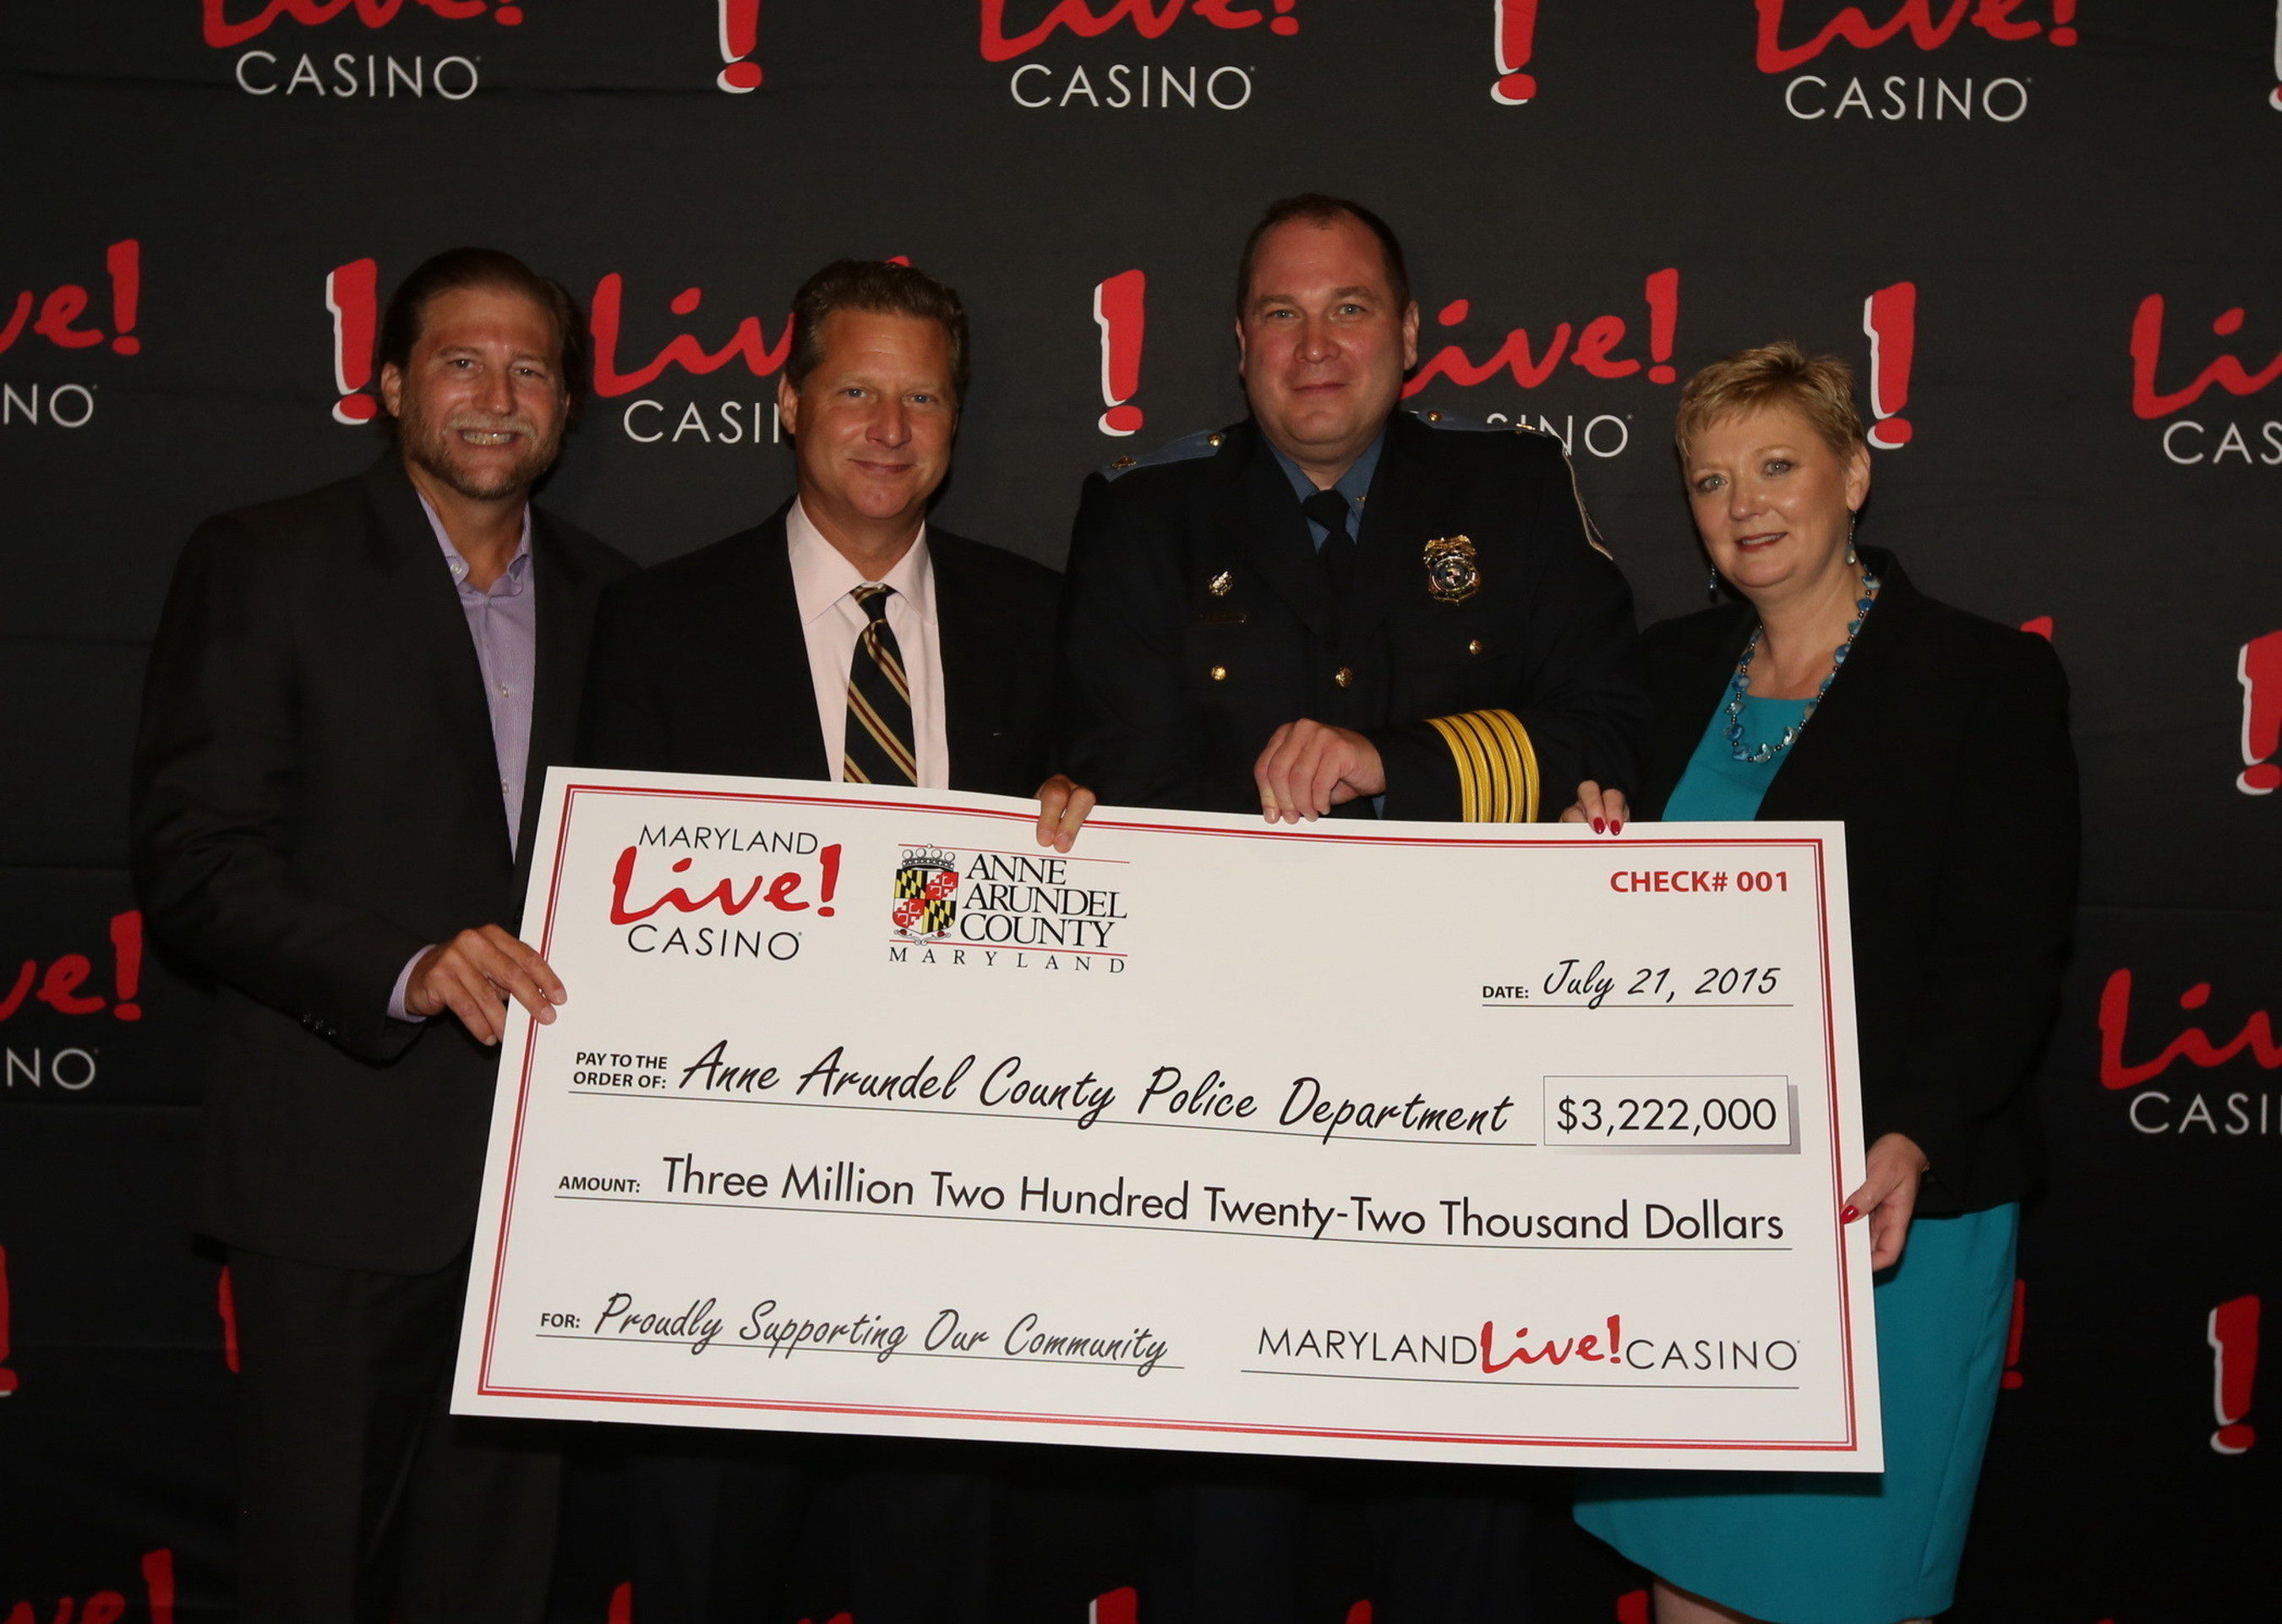 Joe Weinberg (left) of The Cordish Companies, and Anne Arundel County Executive Steve Schuh (2nd from left) today awarded $16 million in local impact grants for fiscal year 2016 to various grant recipients, including local Police, Fire, schools, and parks, as recommended by the Local Development Council (LDC), which helps to manage the allocation of county gaming tax revenue to local organizations.